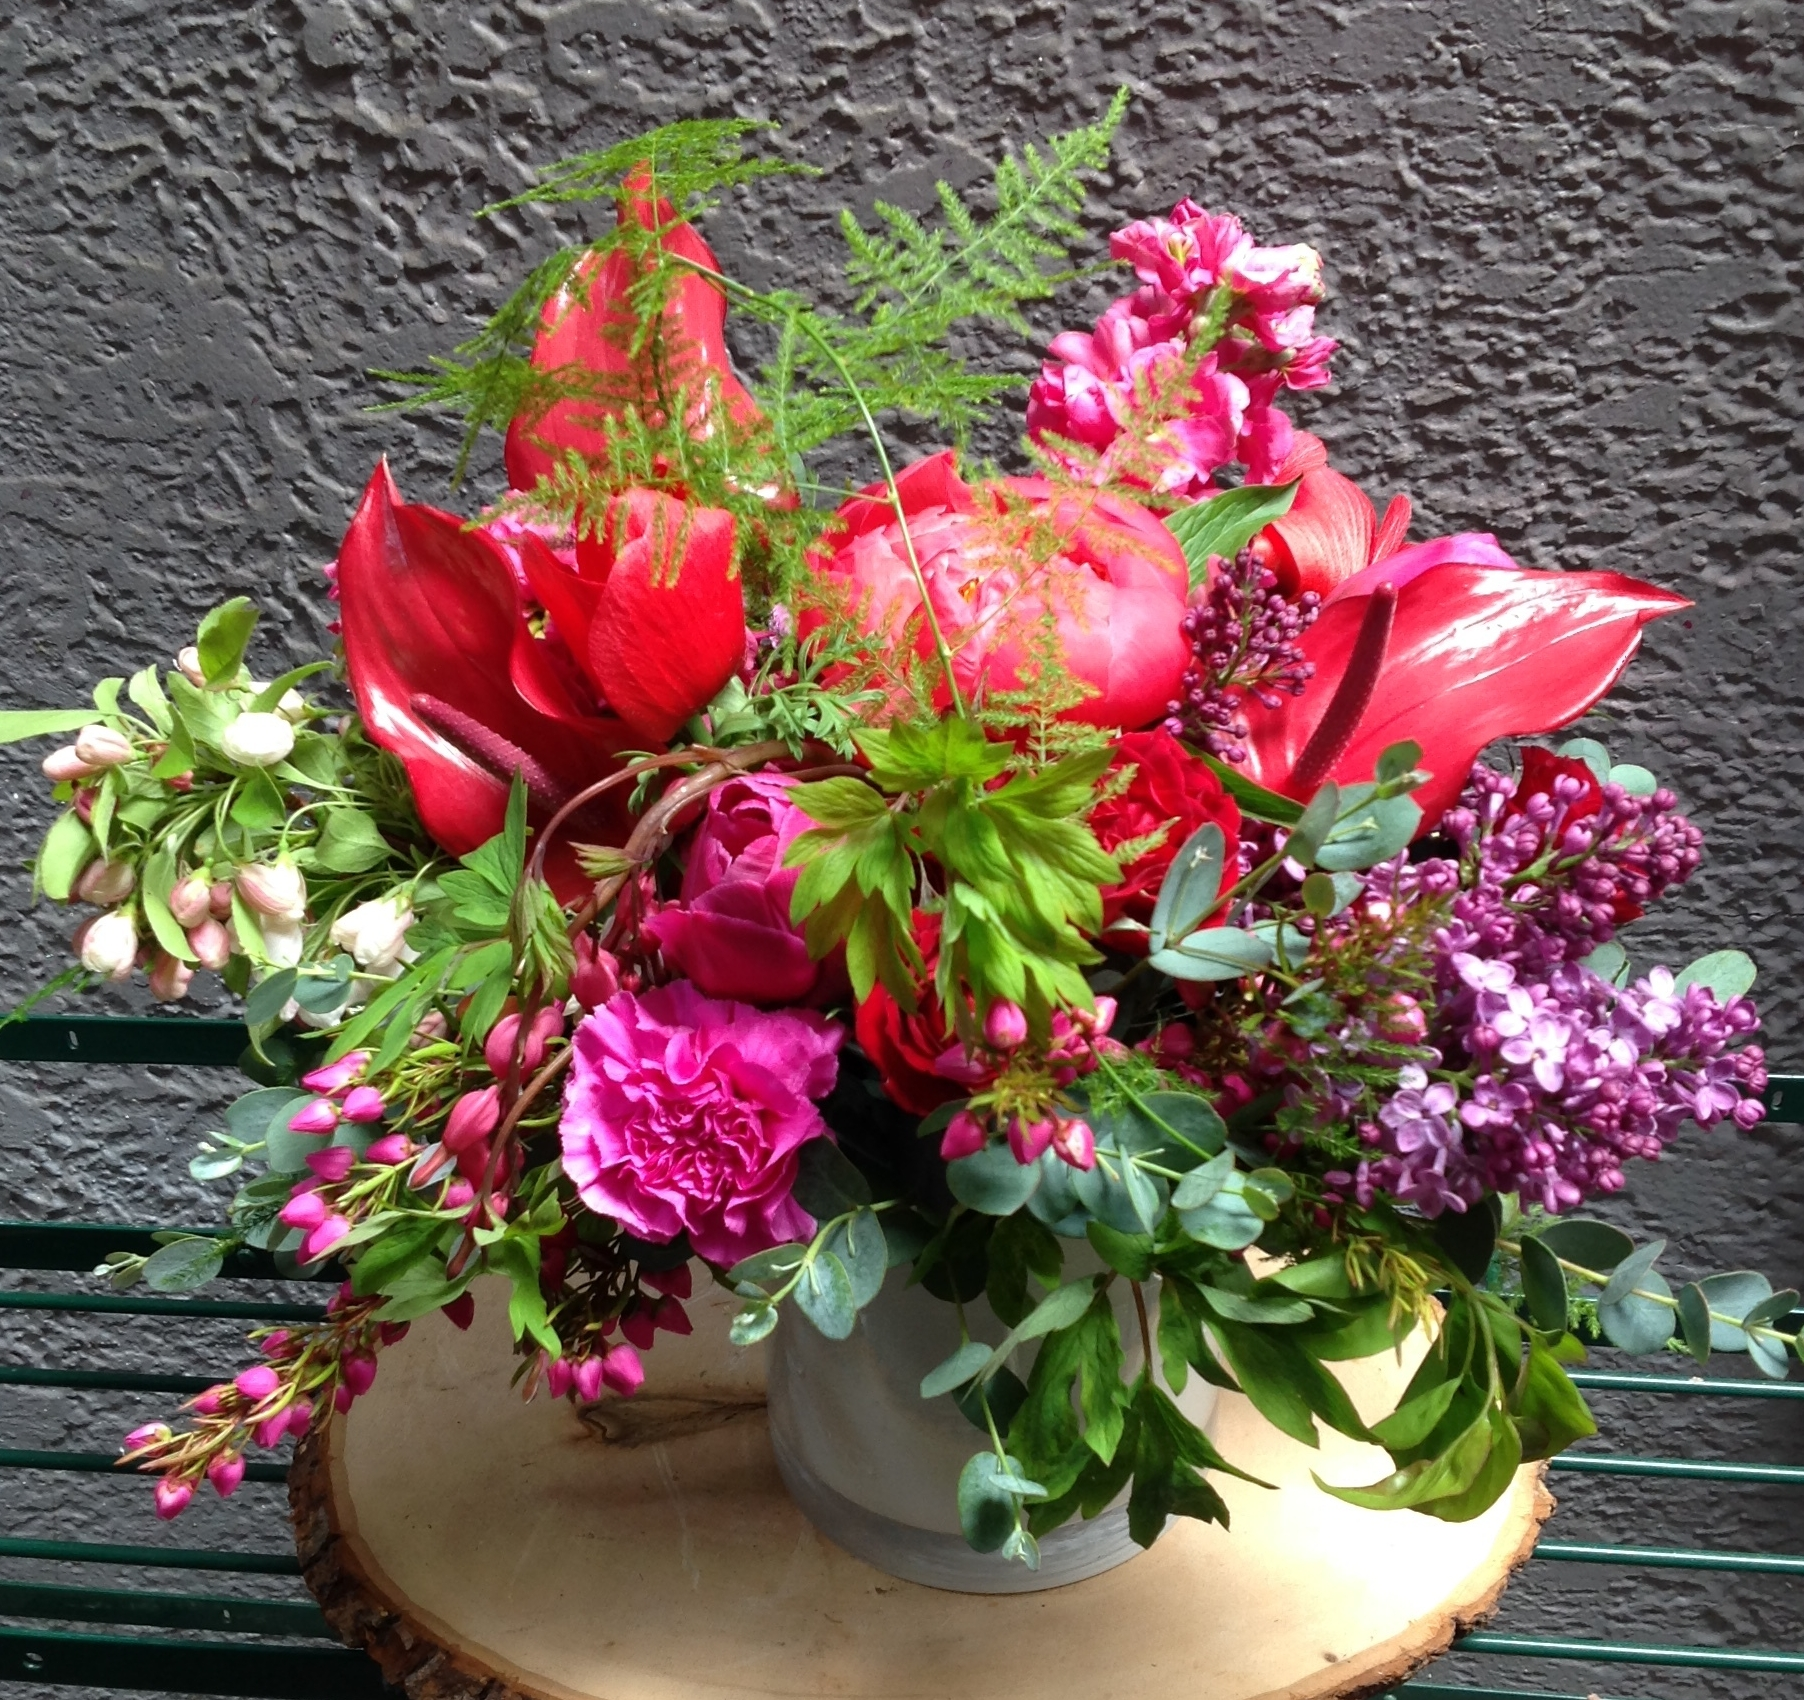 Vibrant and Lush in Shades of Pink